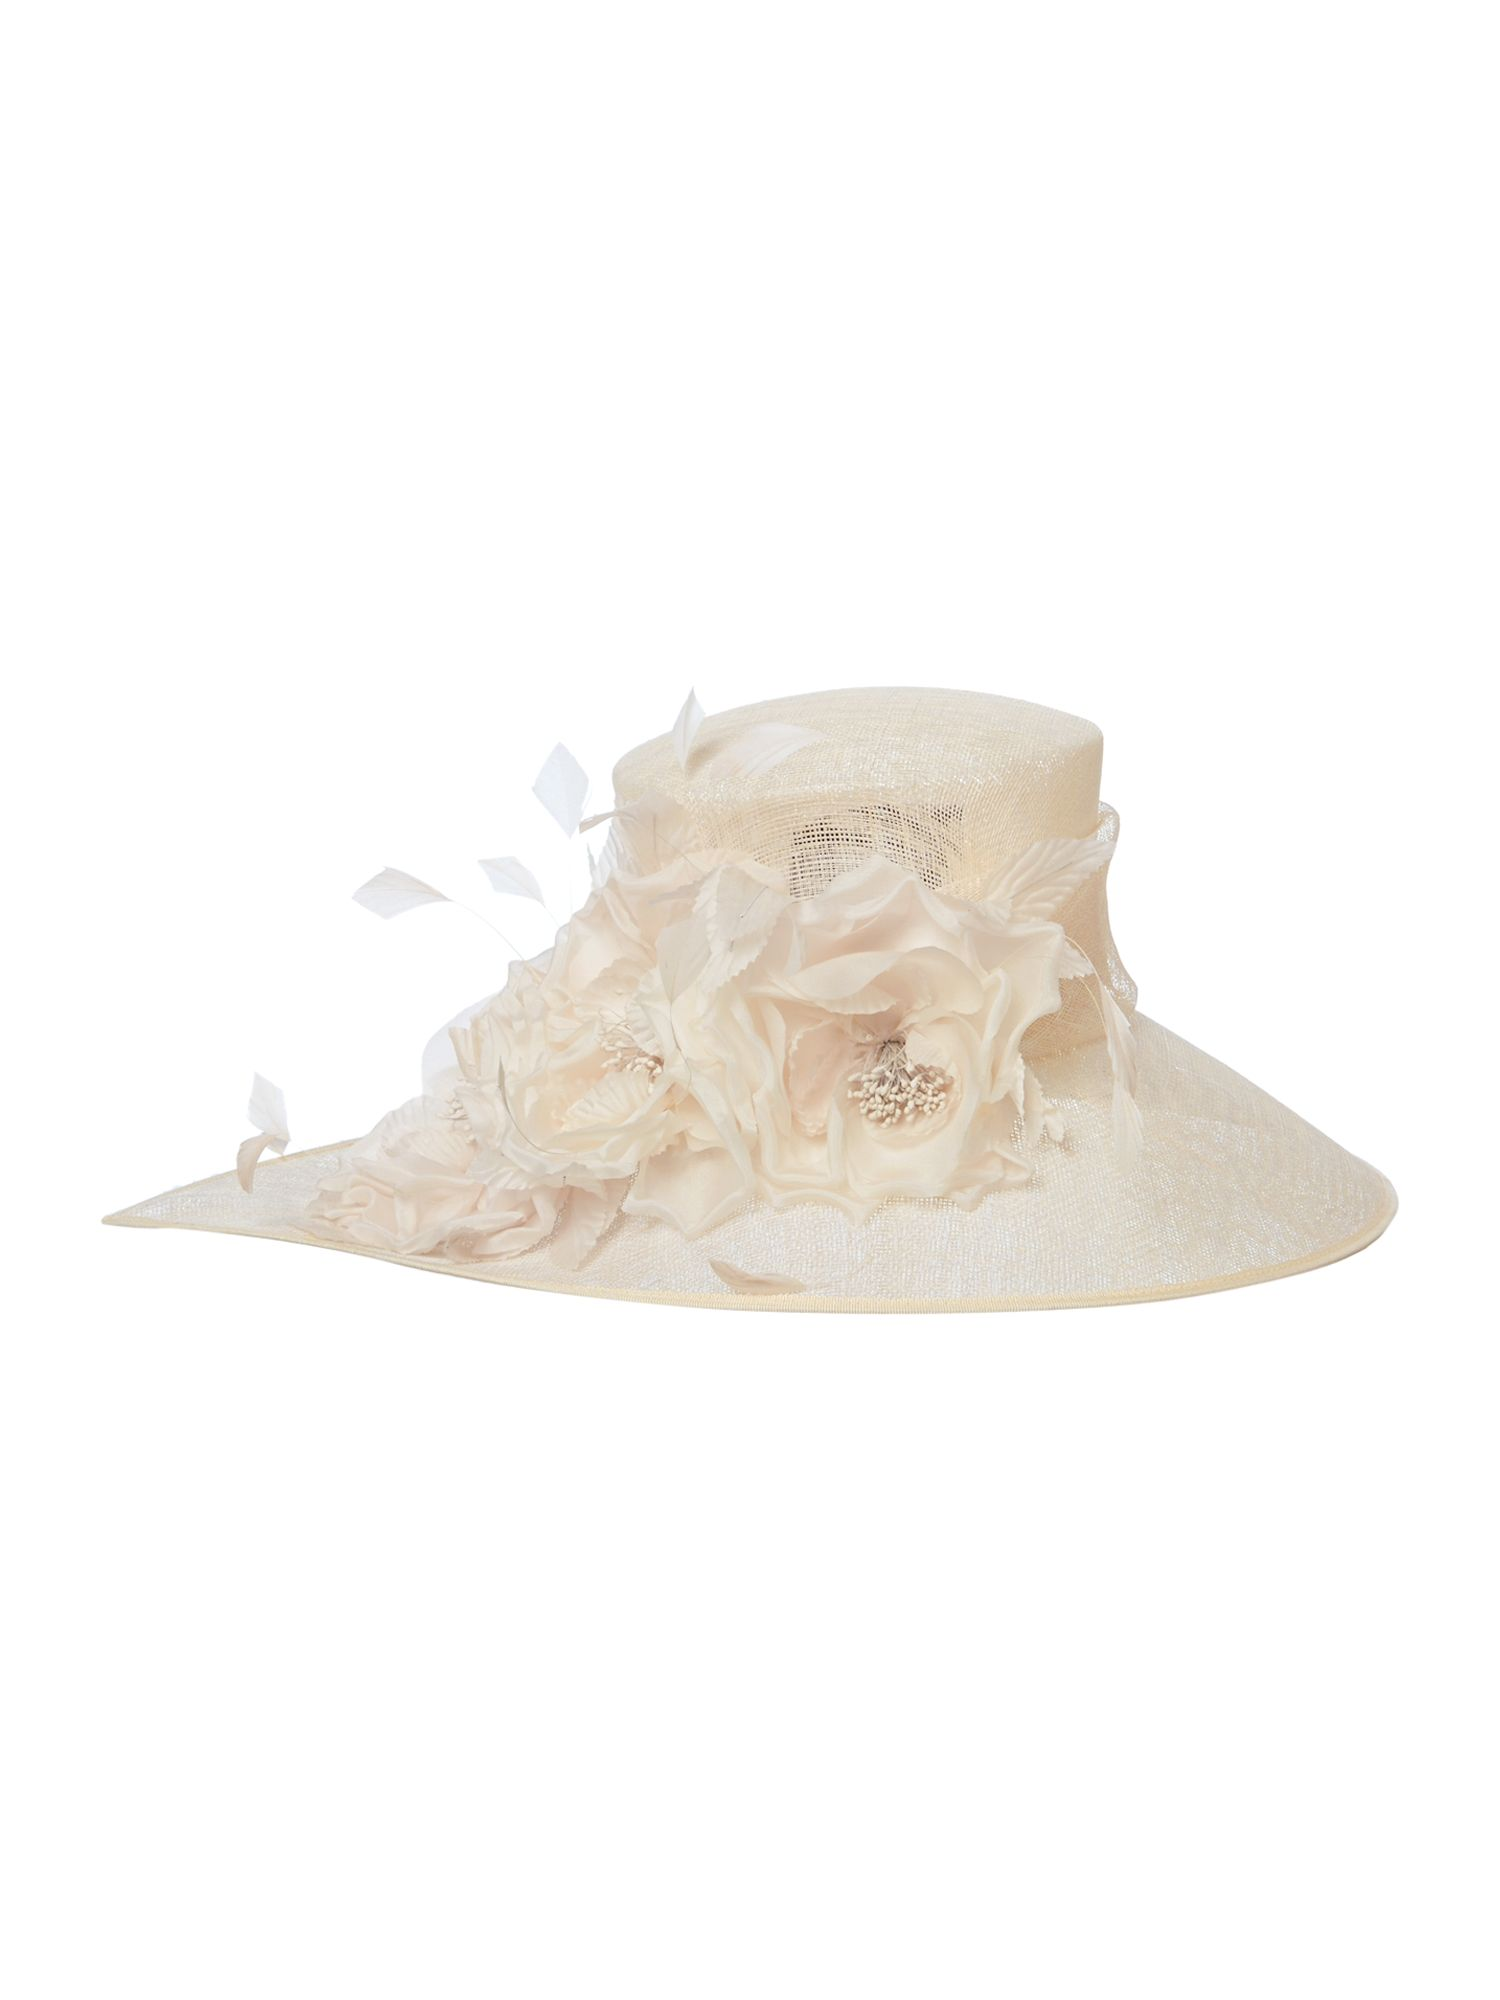 Flower pointed mid brim hat